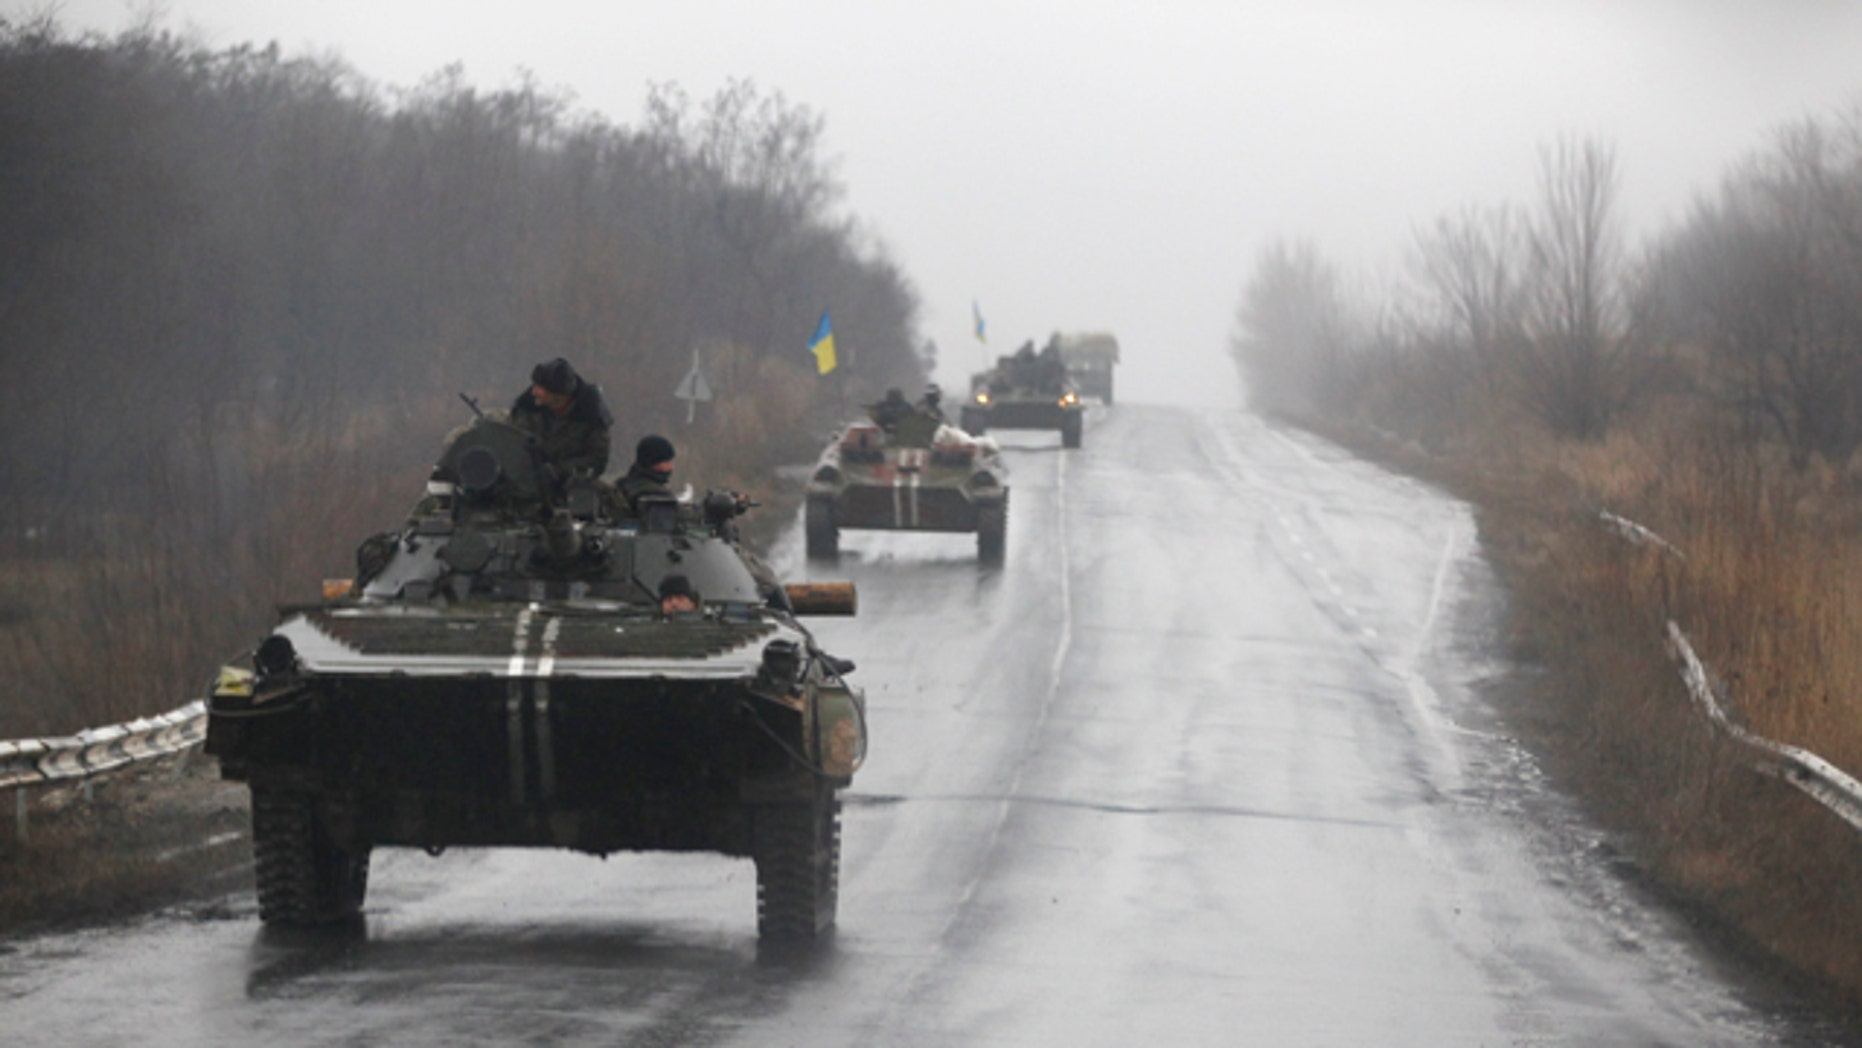 Feb. 1, 2015: Ukranian military vehicles are seen driving on the road towards the town of Artemivsk. Fighting between government and Russian-backed separatist forces in eastern Ukraine has intensified in recent days as rebels seek to encircle the town of Debaltseve, which hosts a strategically important railyway hub. (AP Photo/Petr David Josek)